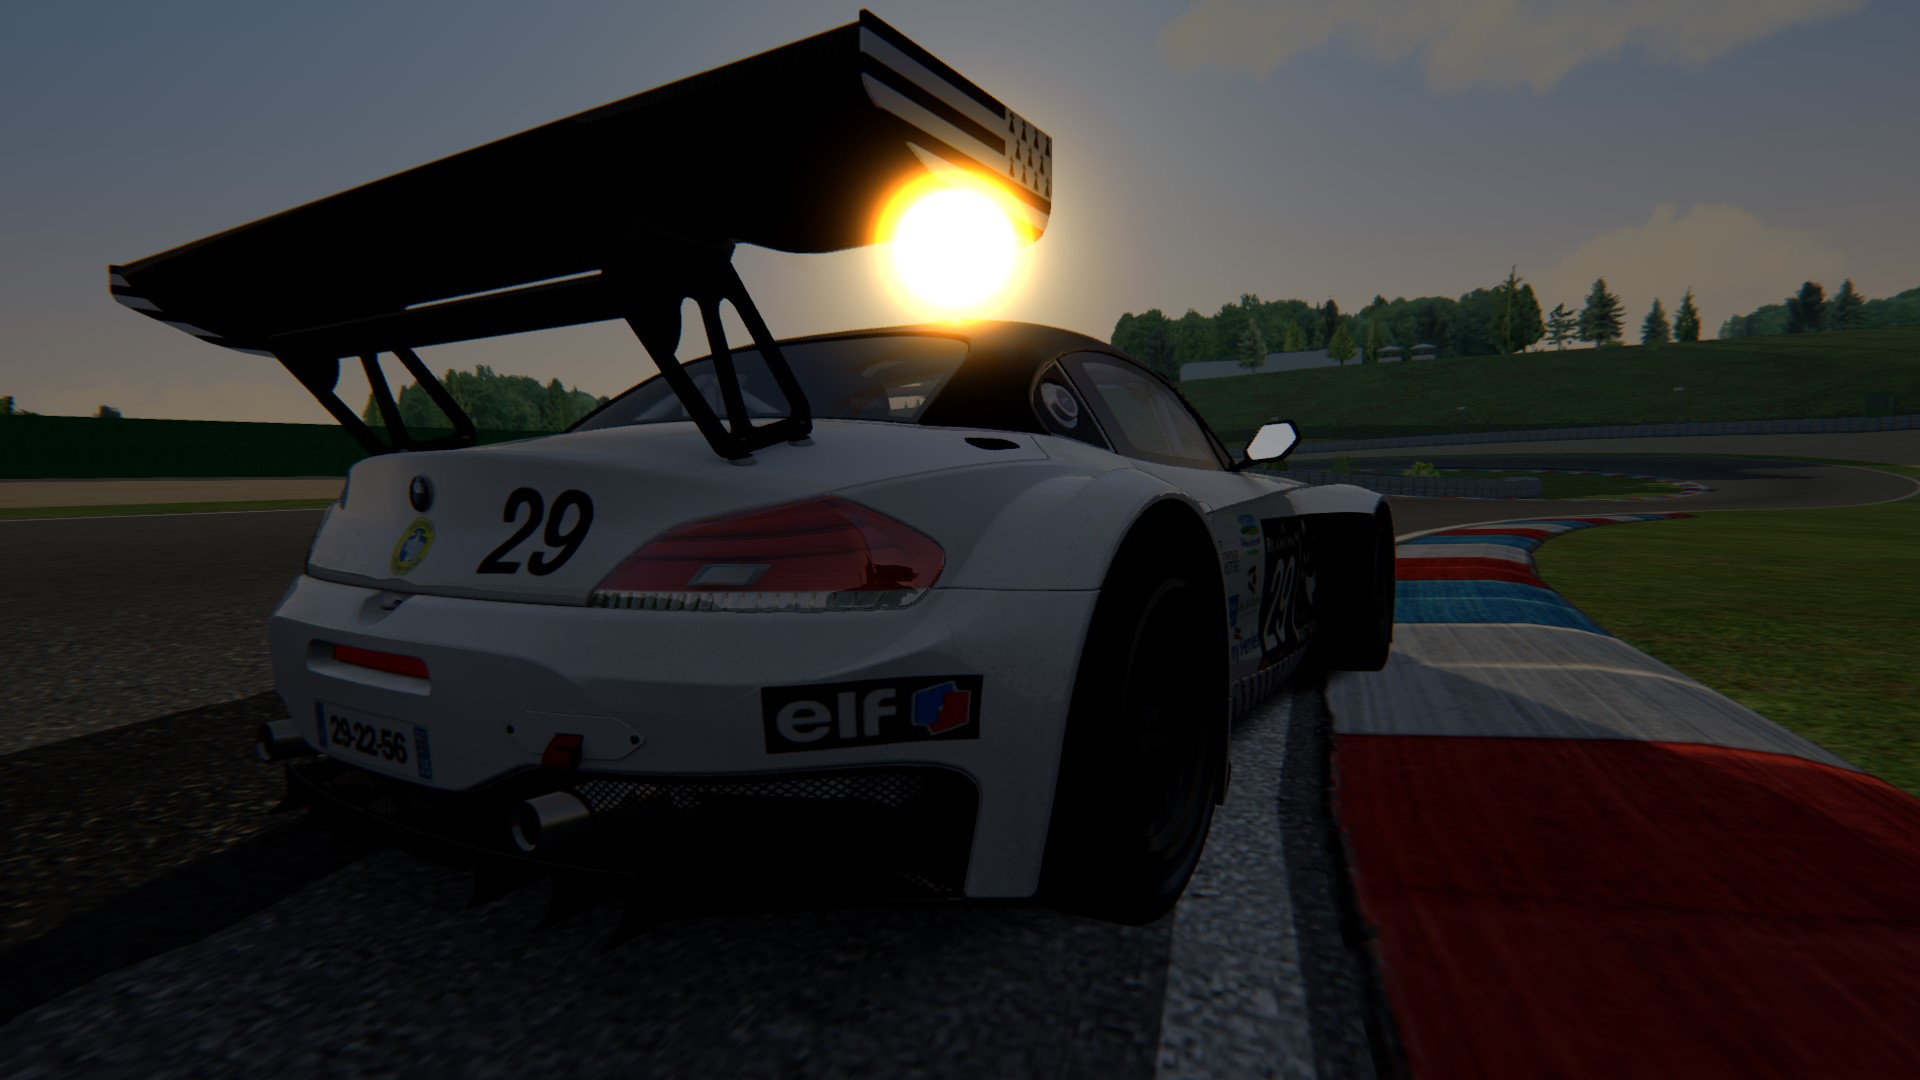 Screenshot_bmw_z4_gt3_brno_6-8-2014-22-2-54.jpg